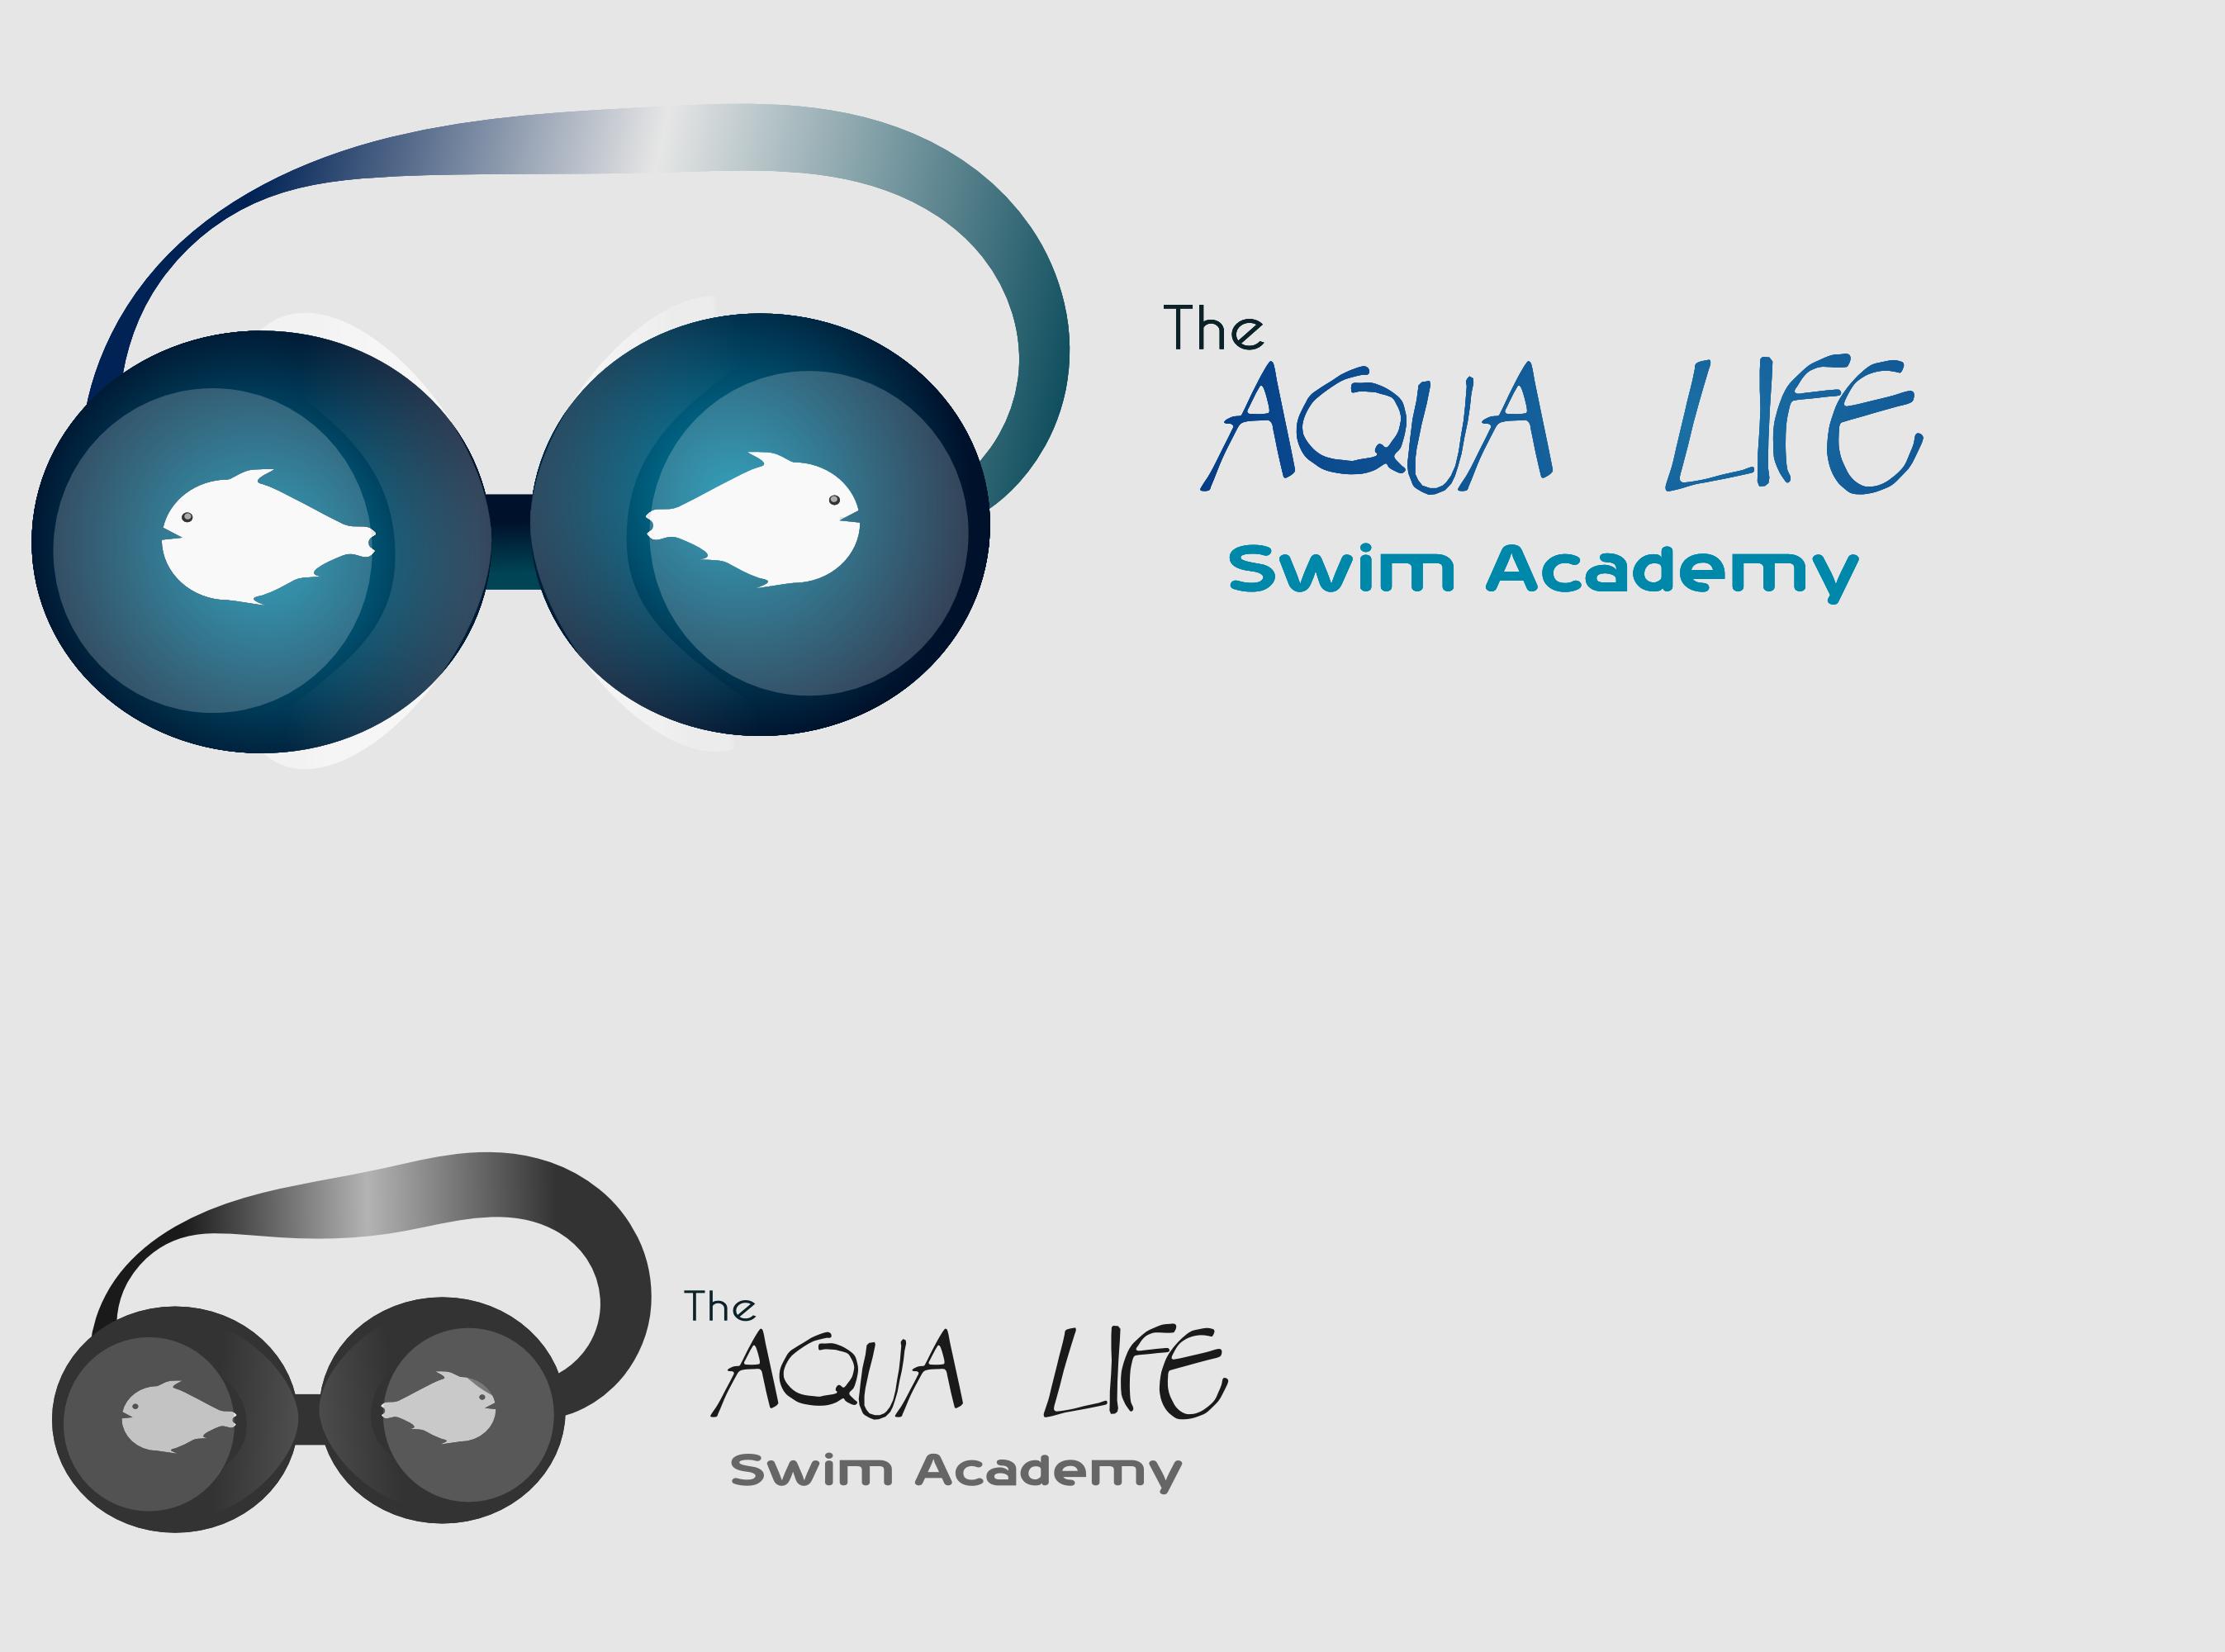 Logo Design by Arindam Khanda - Entry No. 87 in the Logo Design Contest Artistic Logo Design Wanted for The Aqua Life Swim Academy.